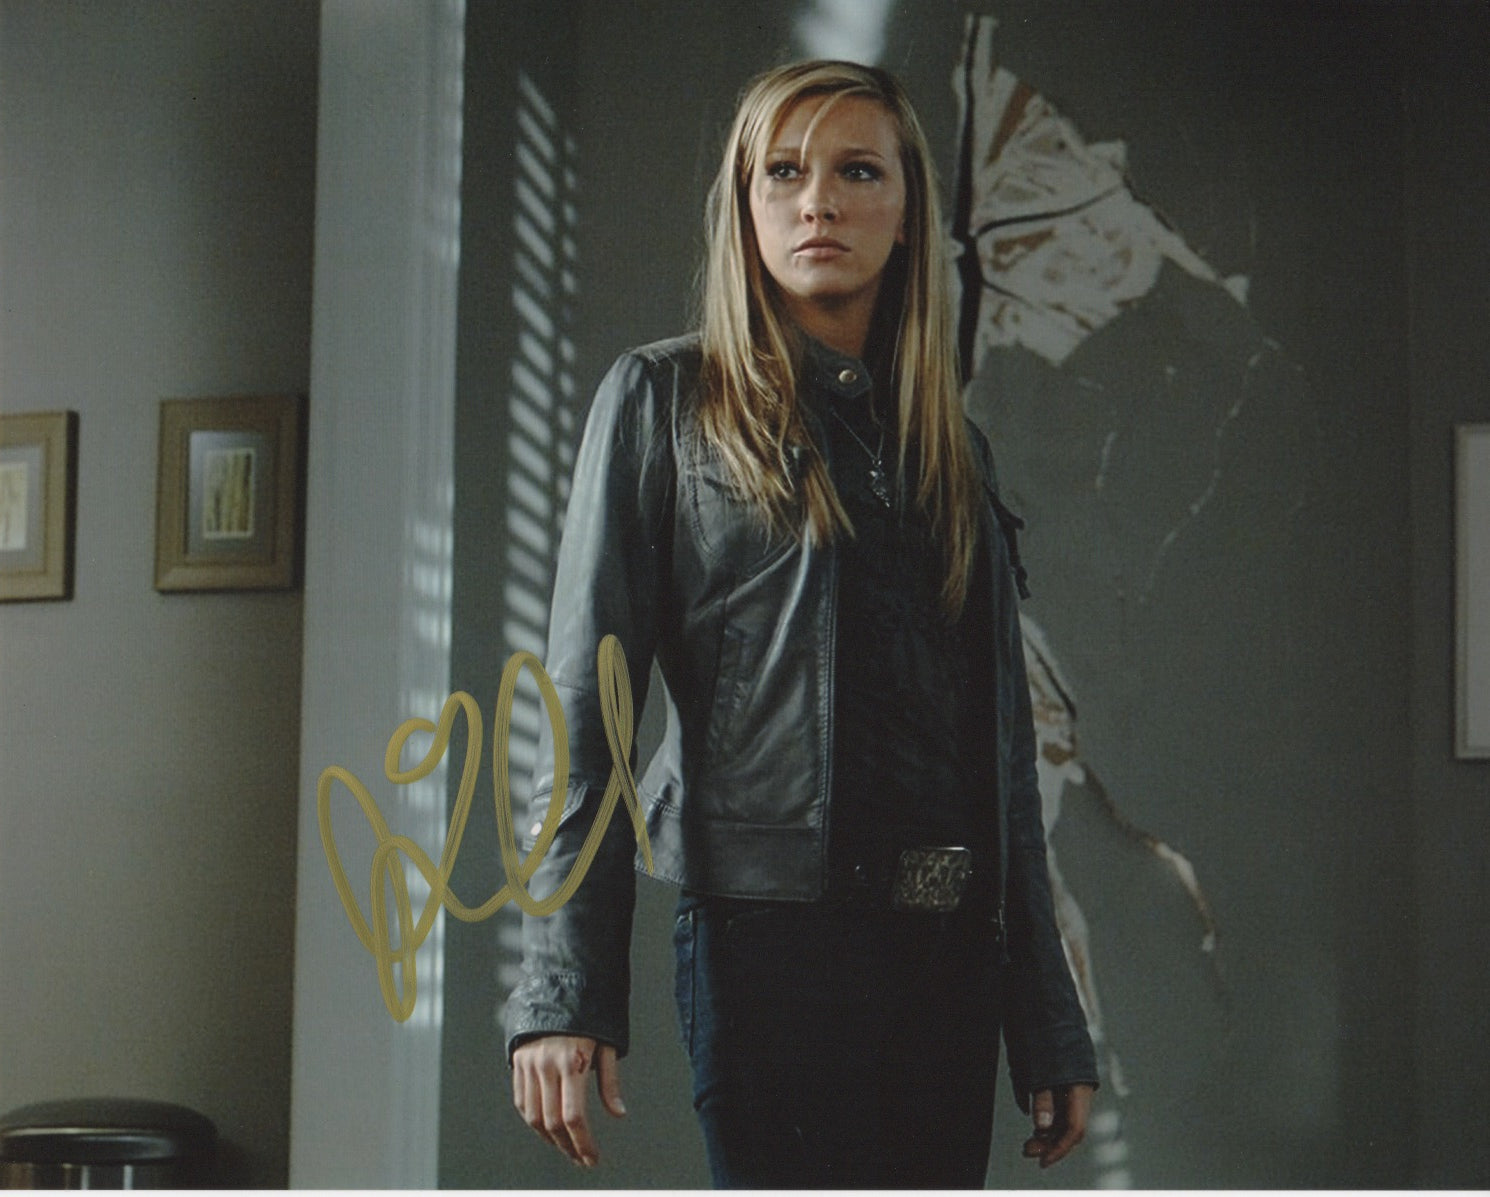 Katie Cassidy Supernatural Autograph 8x10 Photo Signed #3